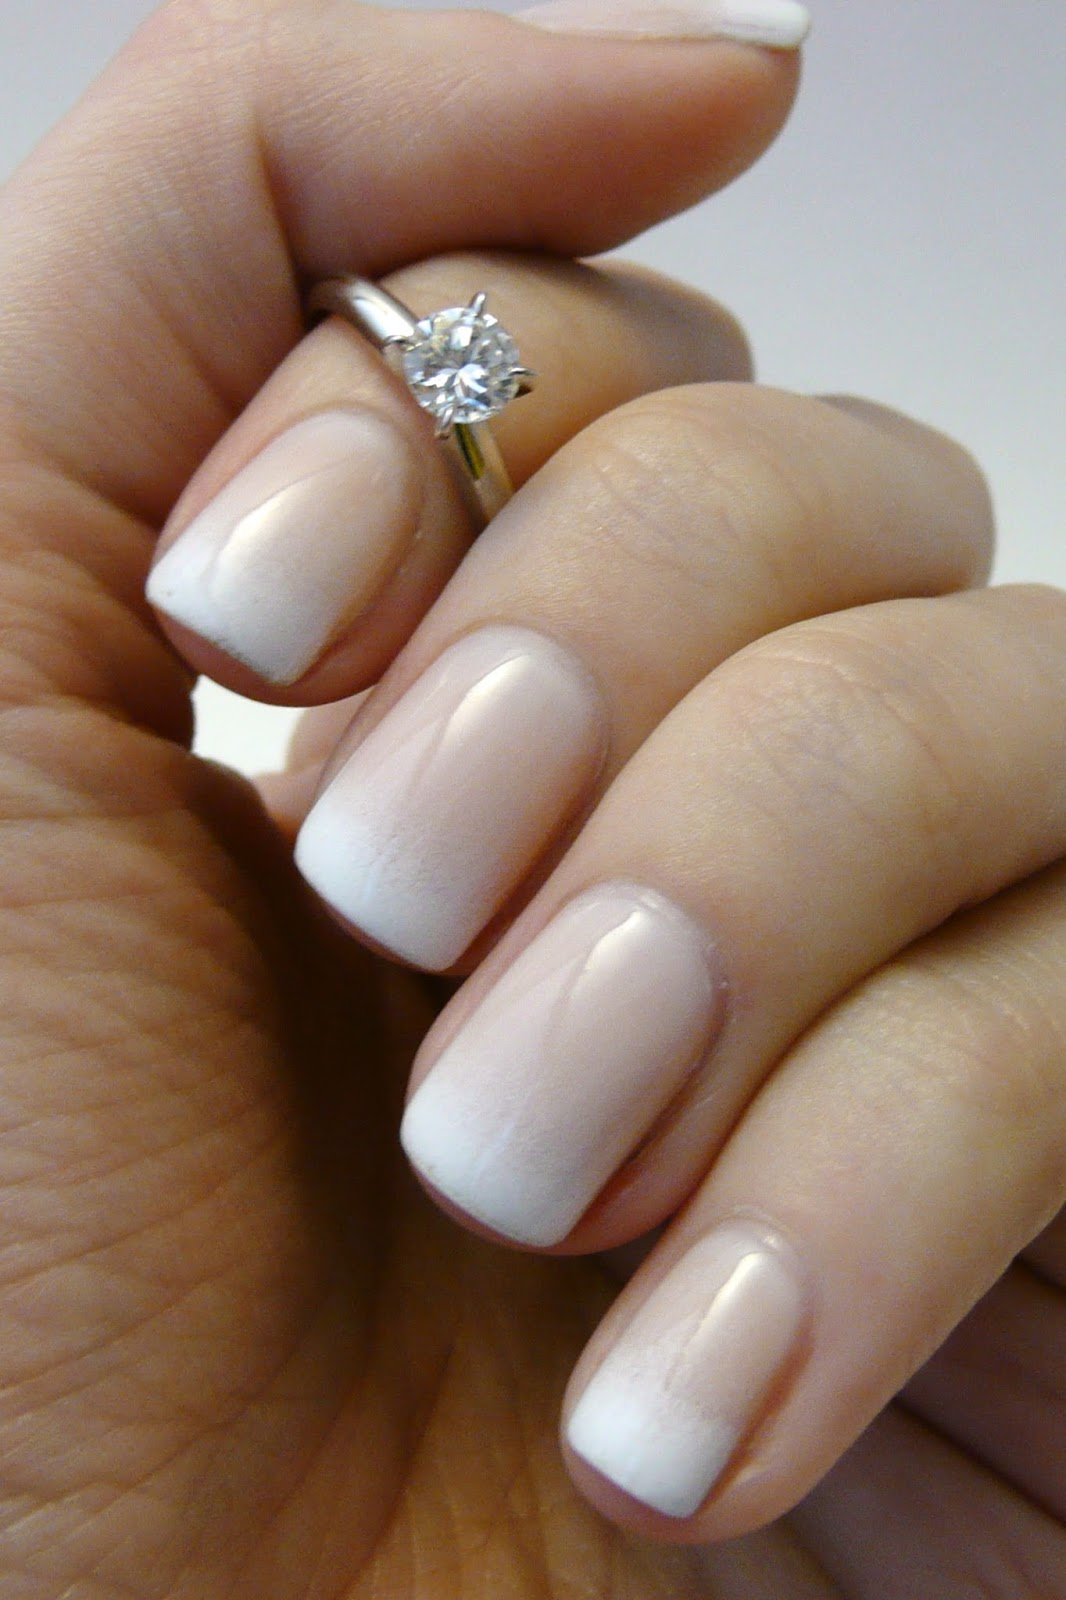 ... ? Like this better than the traditional French manicure? Let us know